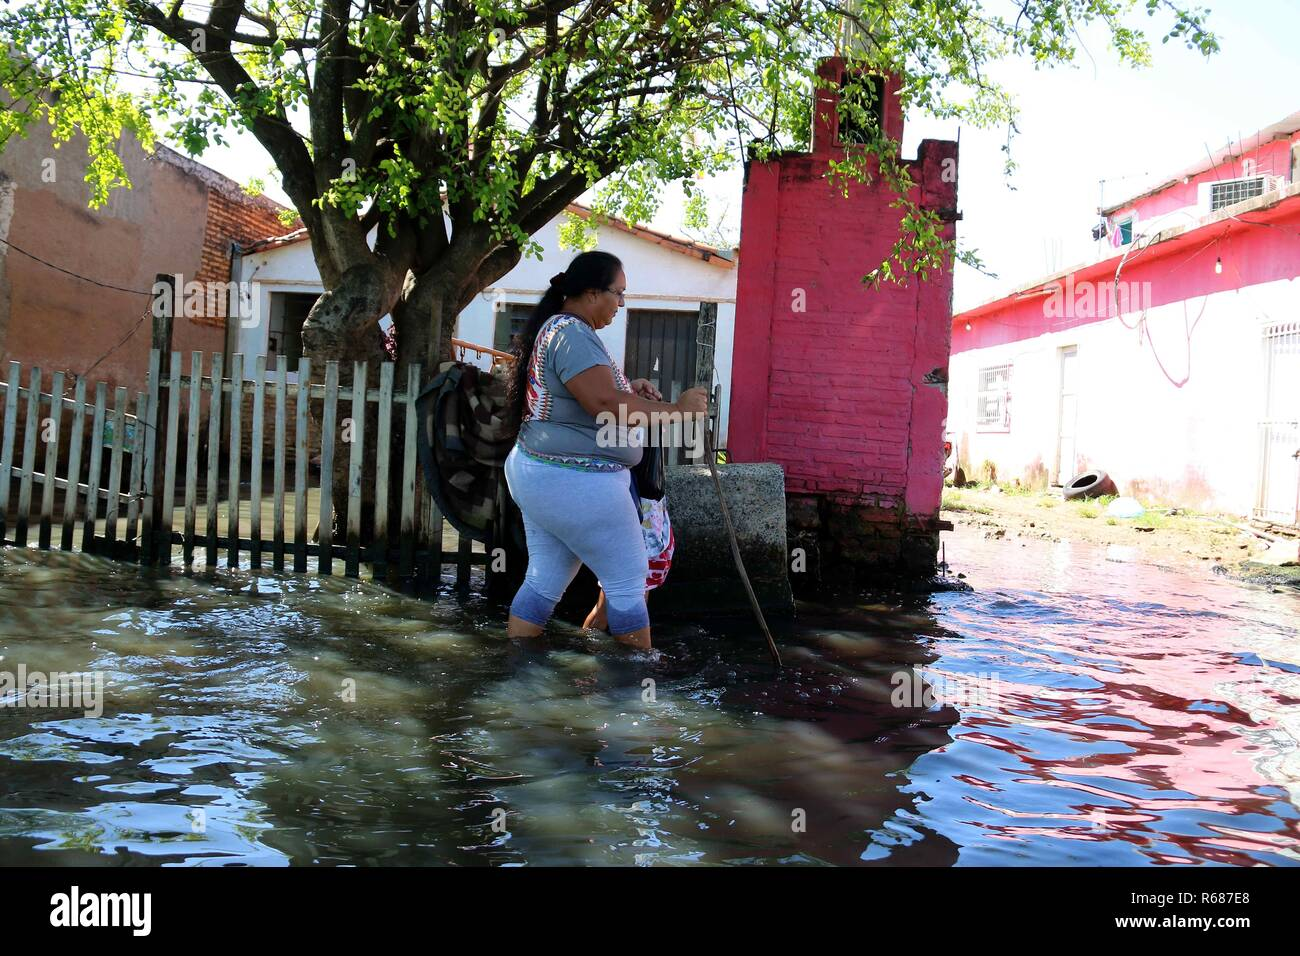 Asuncion, Paraguay. 04th Dec, 2018. A woman walks on a flooded street, in Asuncion, Paraguay, 04 December 2018. Numerous inhabitants of the neighborhood known as 'Banado Sur' are forced to live in unhygienic conditions due to the stagnant water of the floods caused by the rise of the Paraguay river, which have forced 7,500 families to evacuate their homes. Credit: Andres Cristaldo/EFE/Alamy Live News - Stock Image